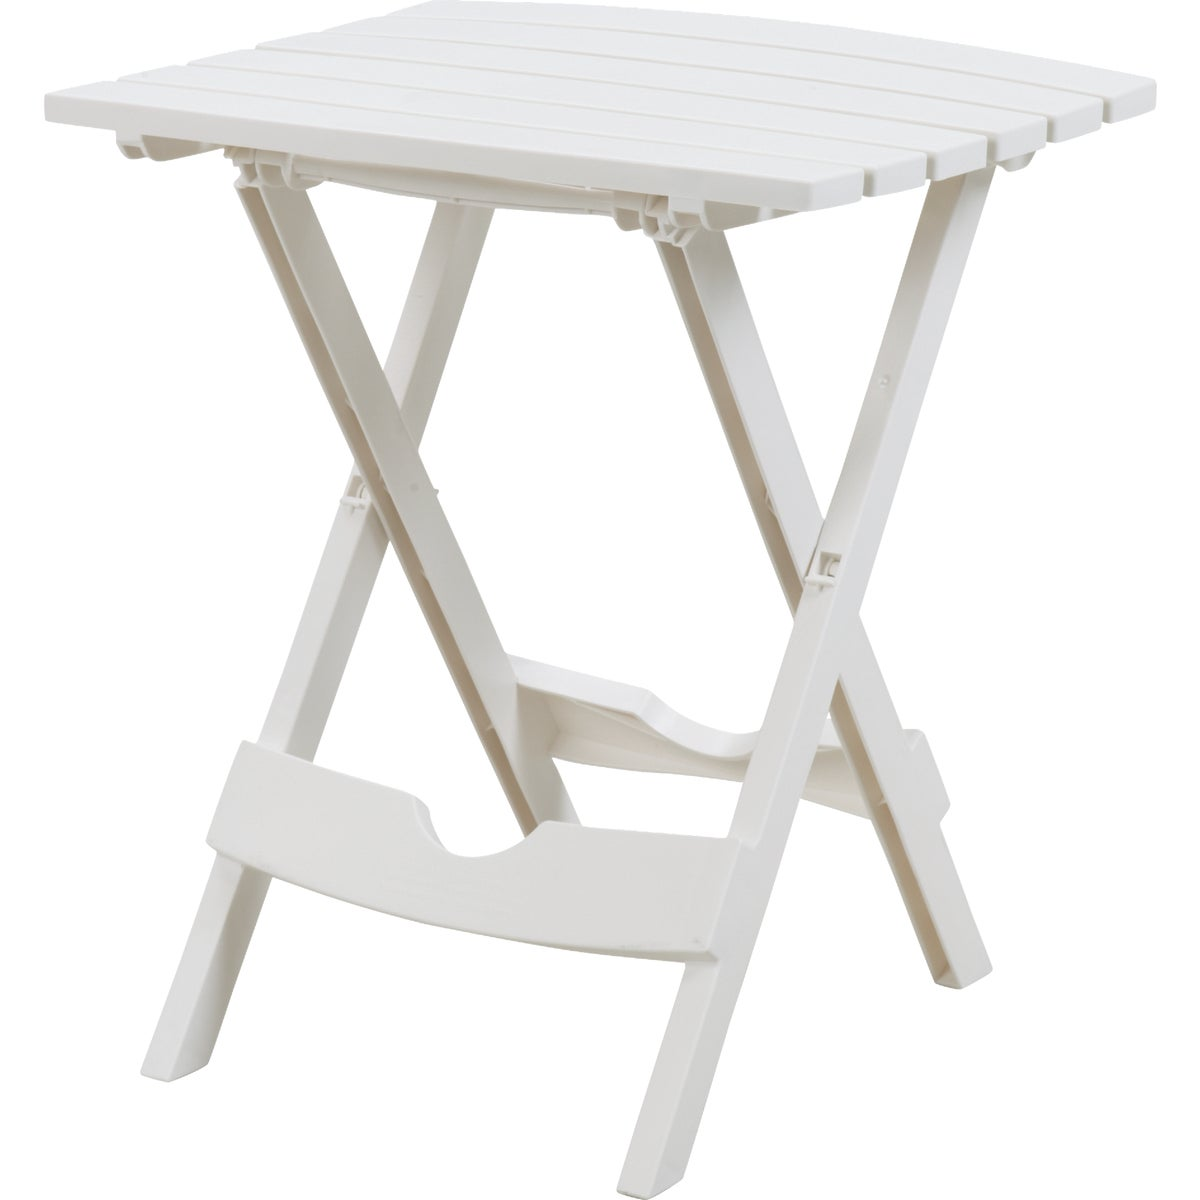 WHITE QUIK FOLD TABLE